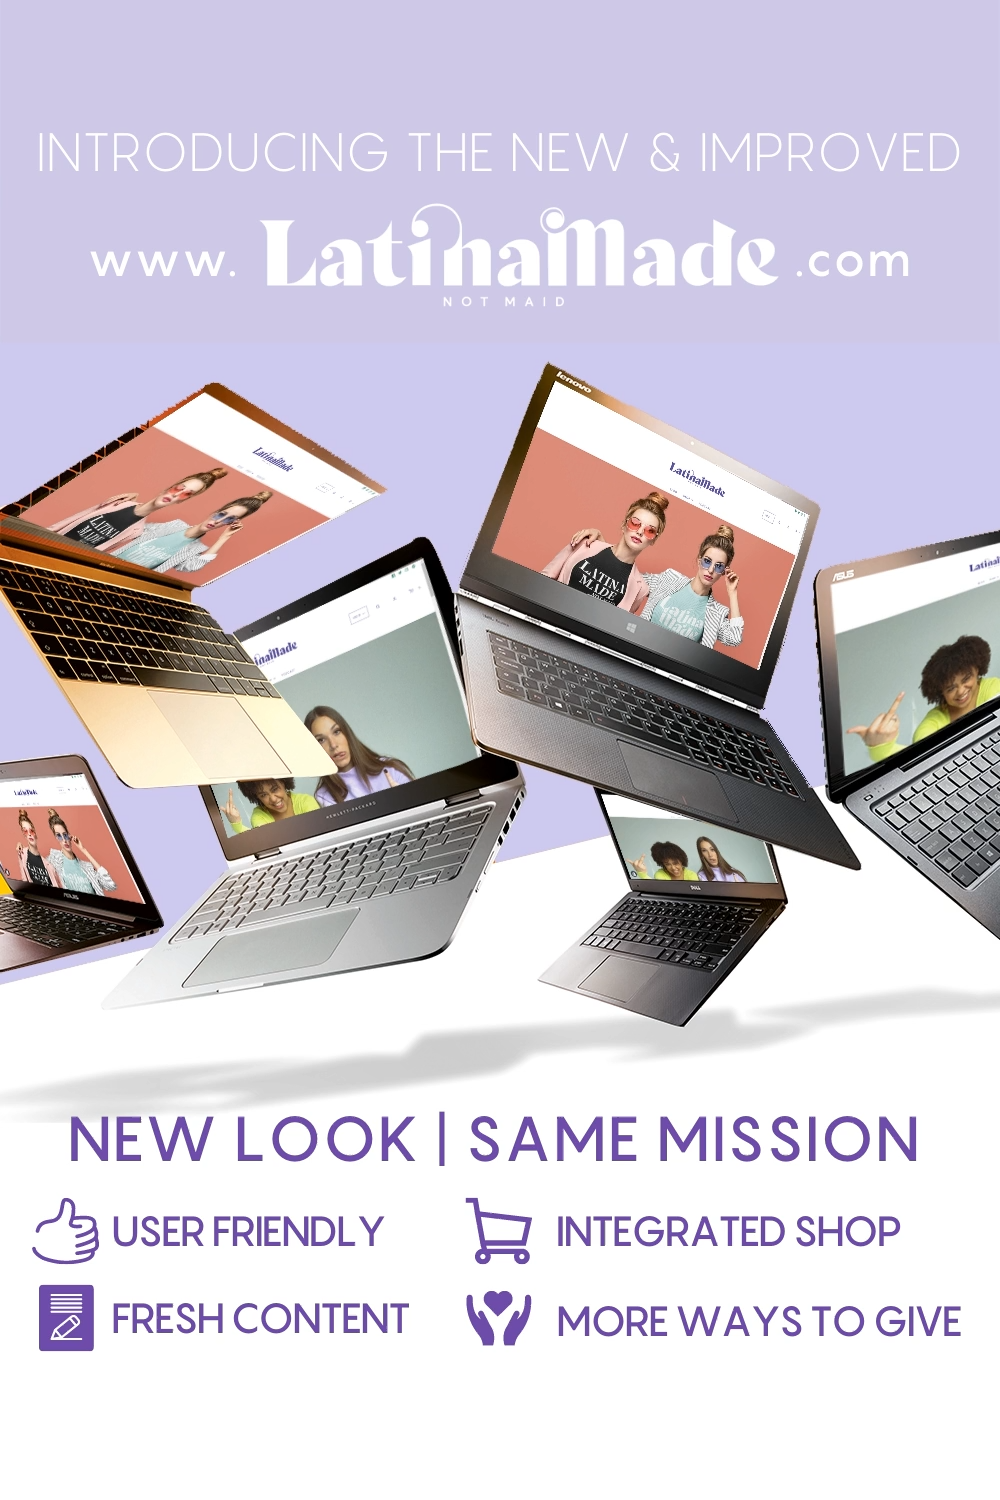 We are LIVE and super excited to hear what you think. A hub for #latinas. #LatinaMadeNotMaid #LatinaMade